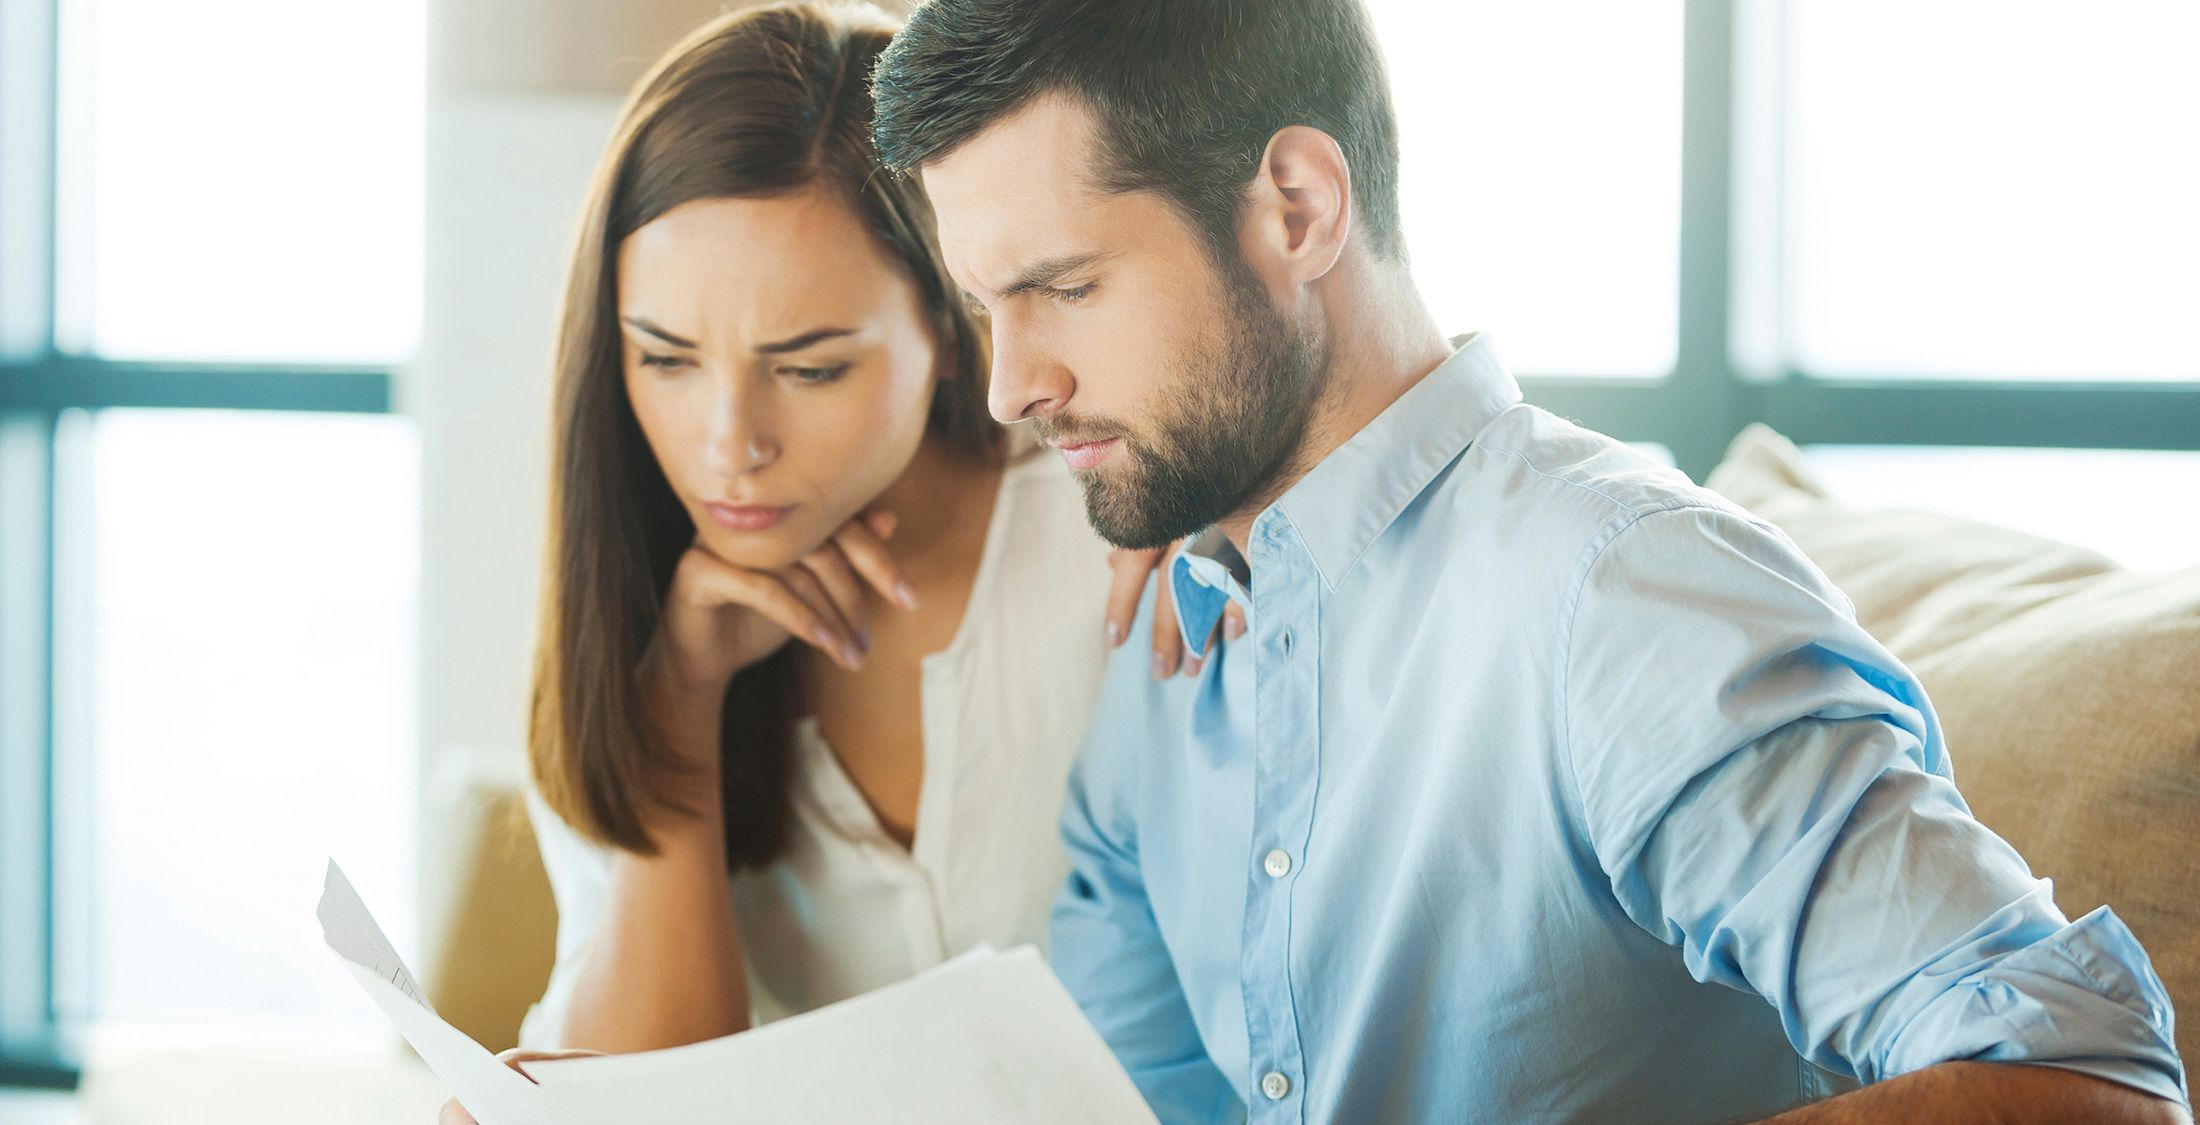 man holding documents and looking at them with woman